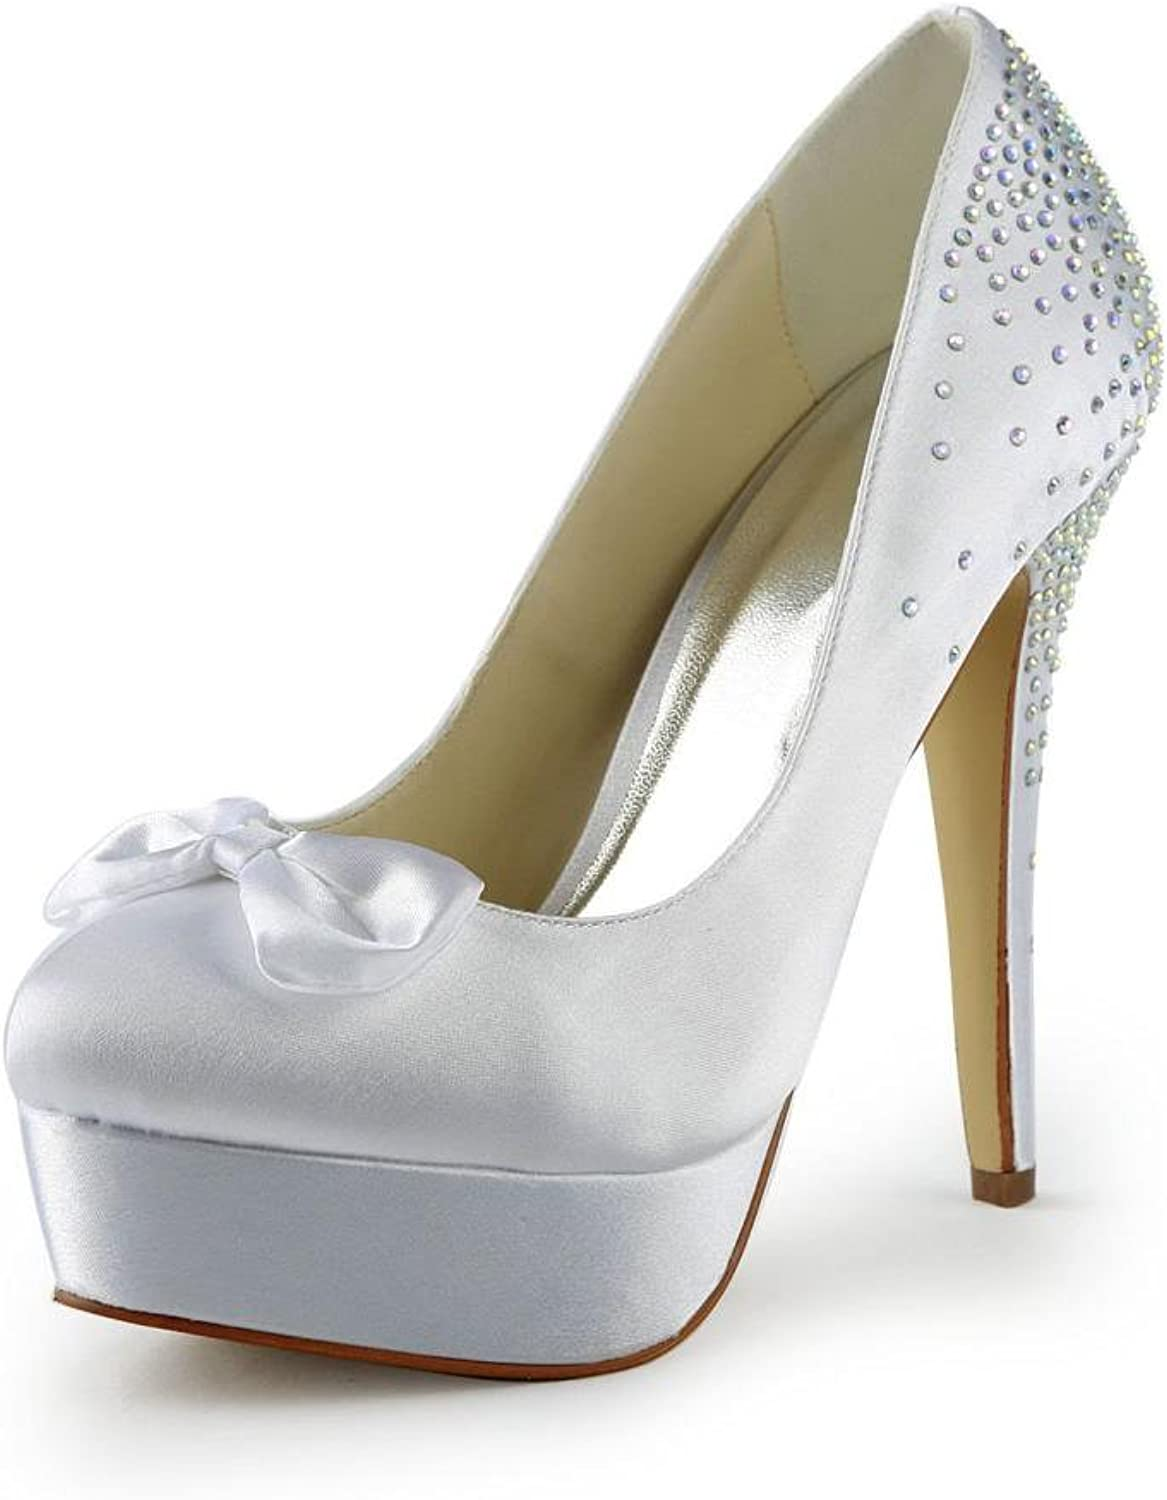 Jia Jia Women's Bridal 20113B Peep Toe Stiletto Heel Satin Wedding shoes